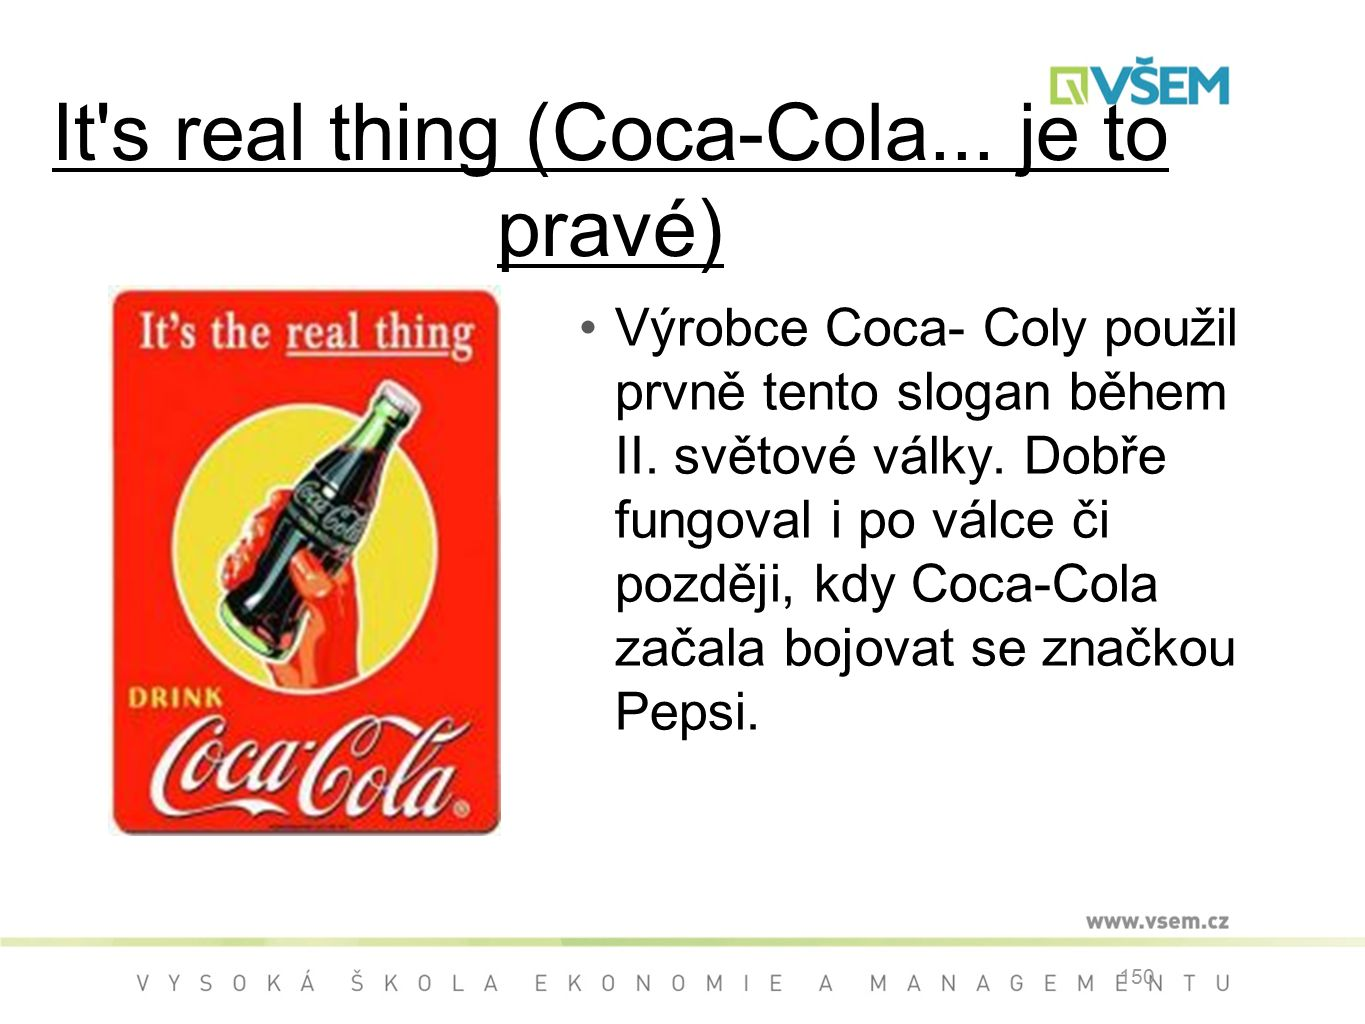 It s real thing (Coca-Cola... je to pravé)